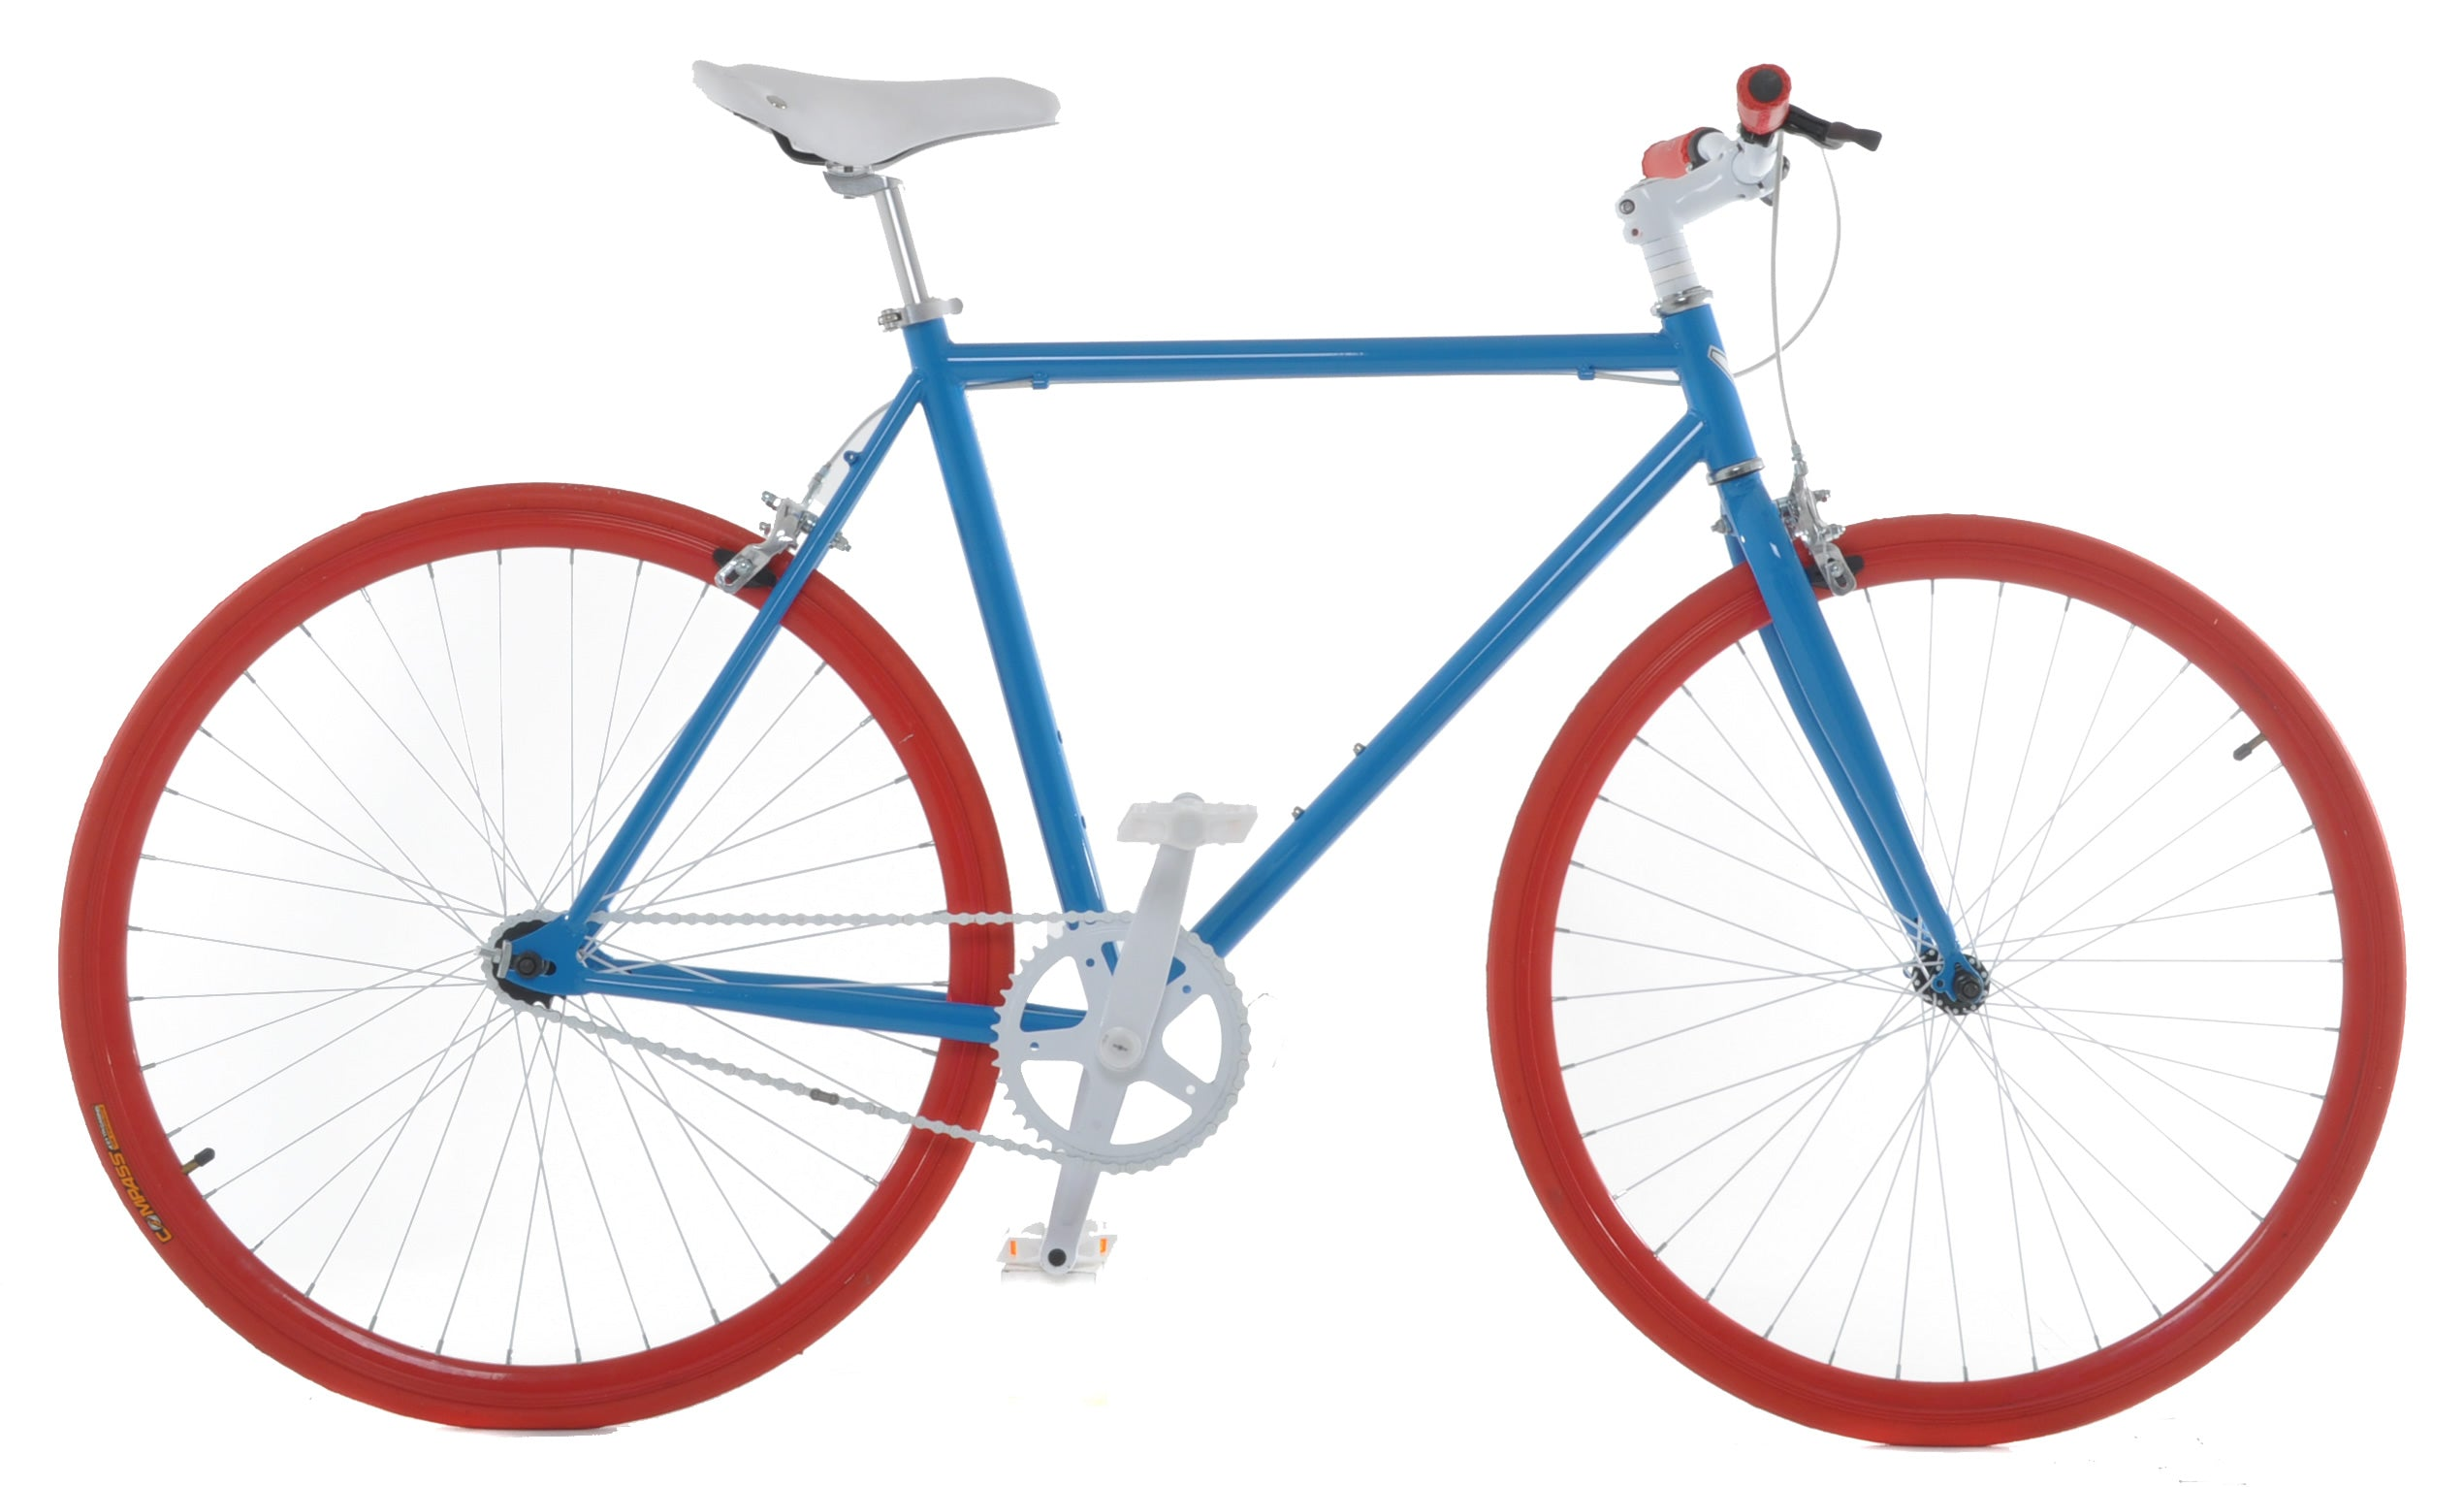 products/700-FIXIE-BLU-RED__01_jpg_490d7d3d-8a6c-4afc-9678-fb951df8a375.jpg